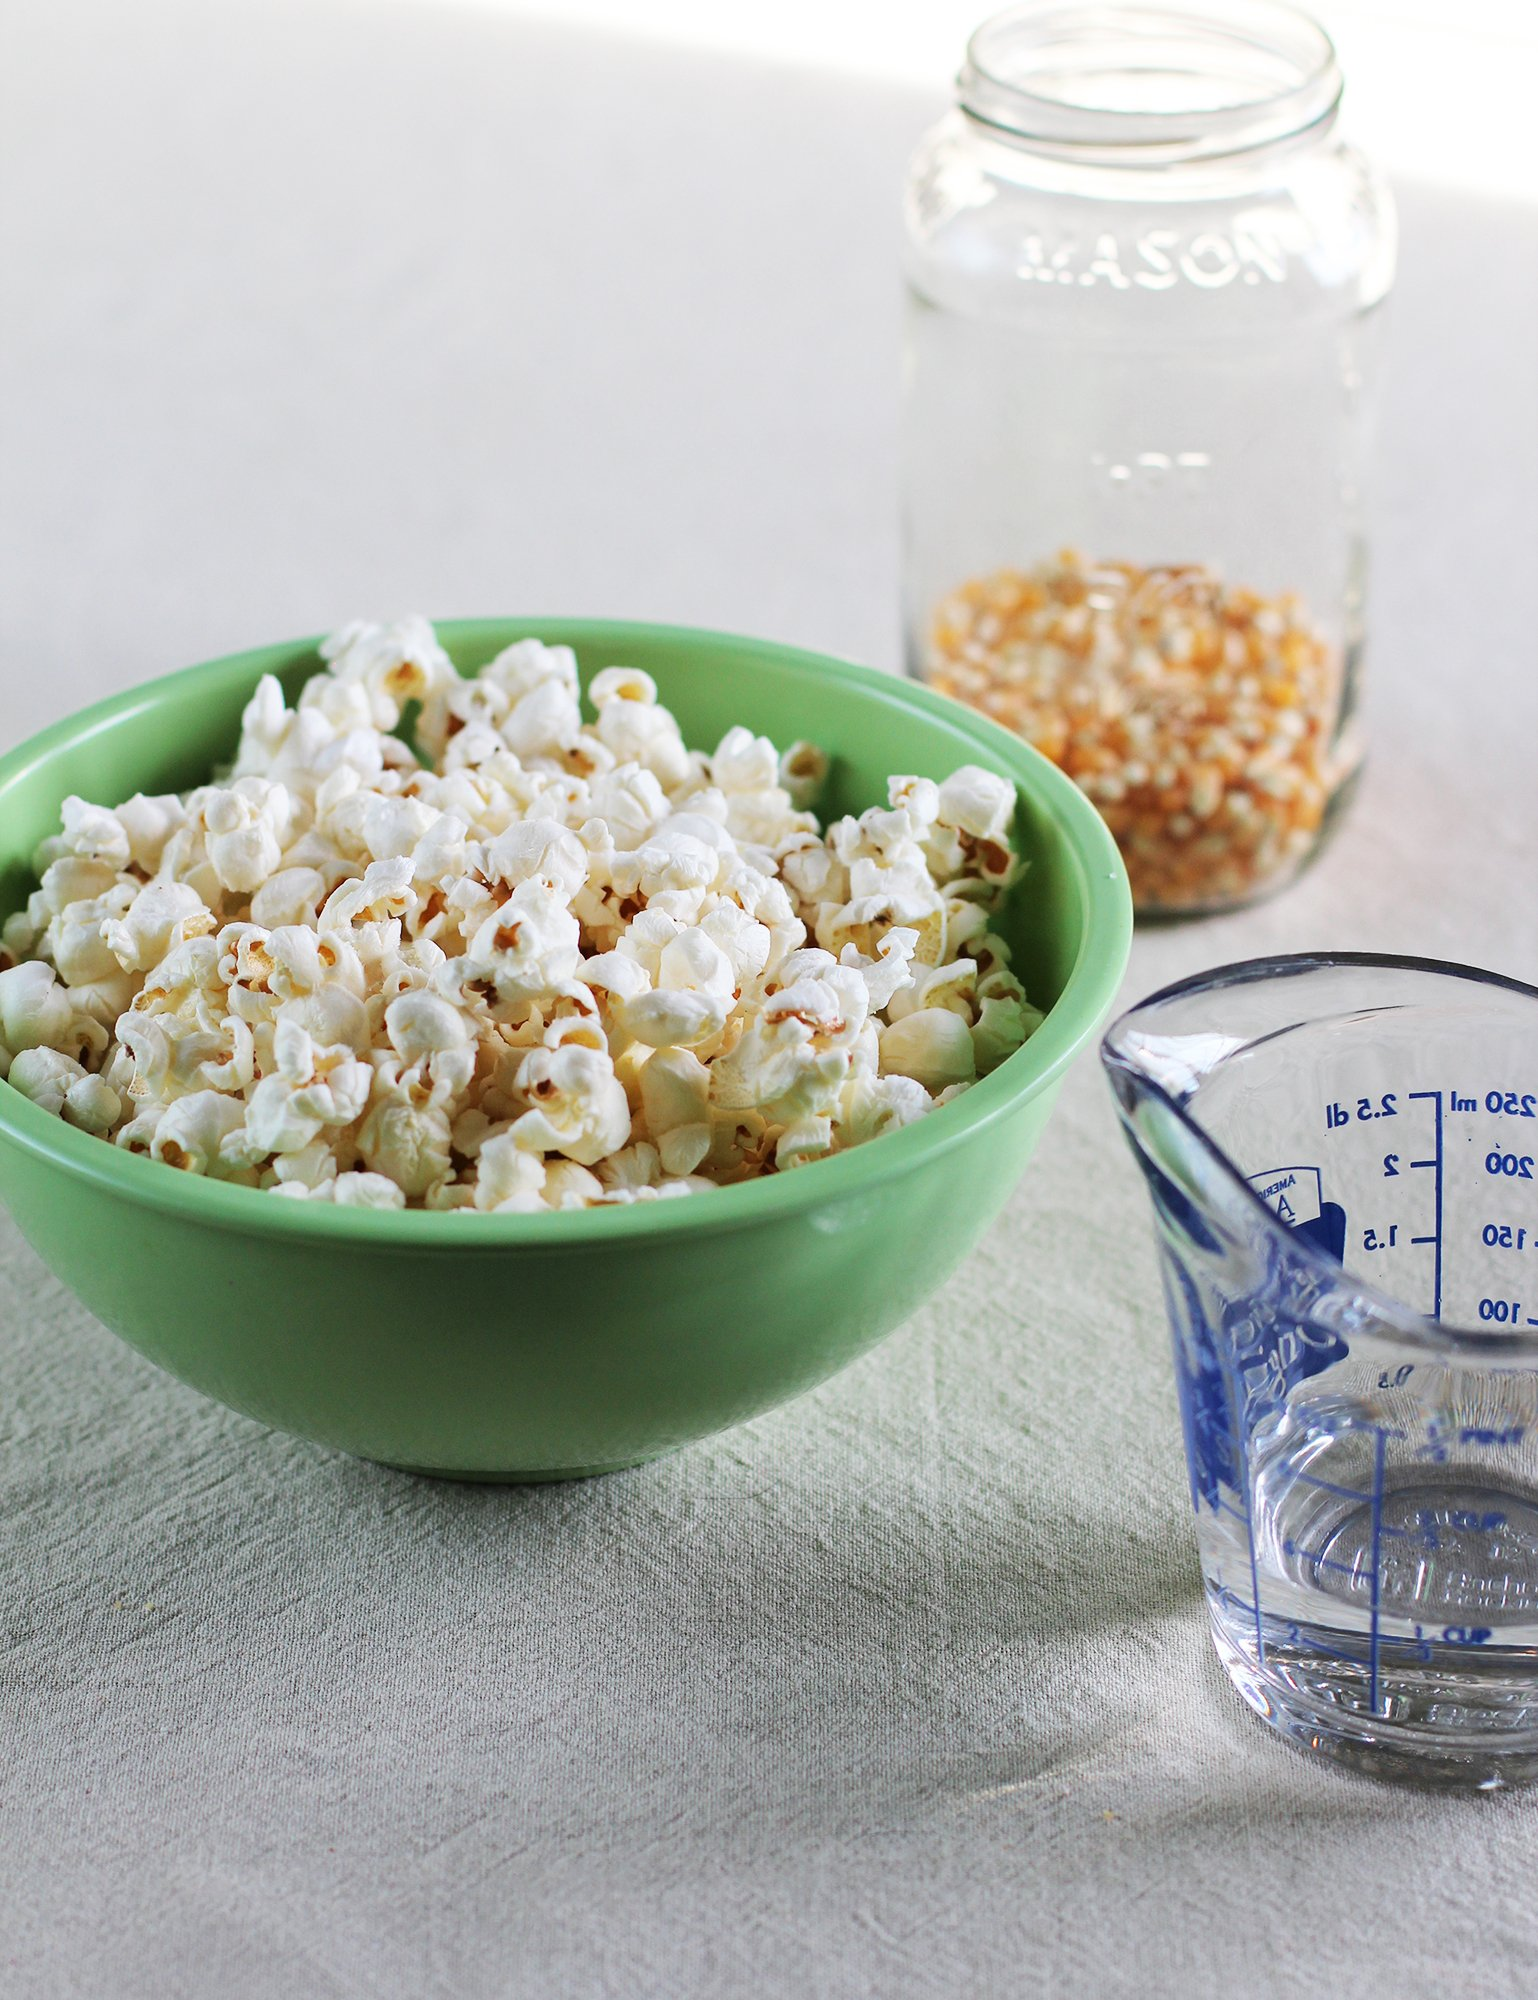 Can You Make Stovetop Popcorn With Water Instead of Oil